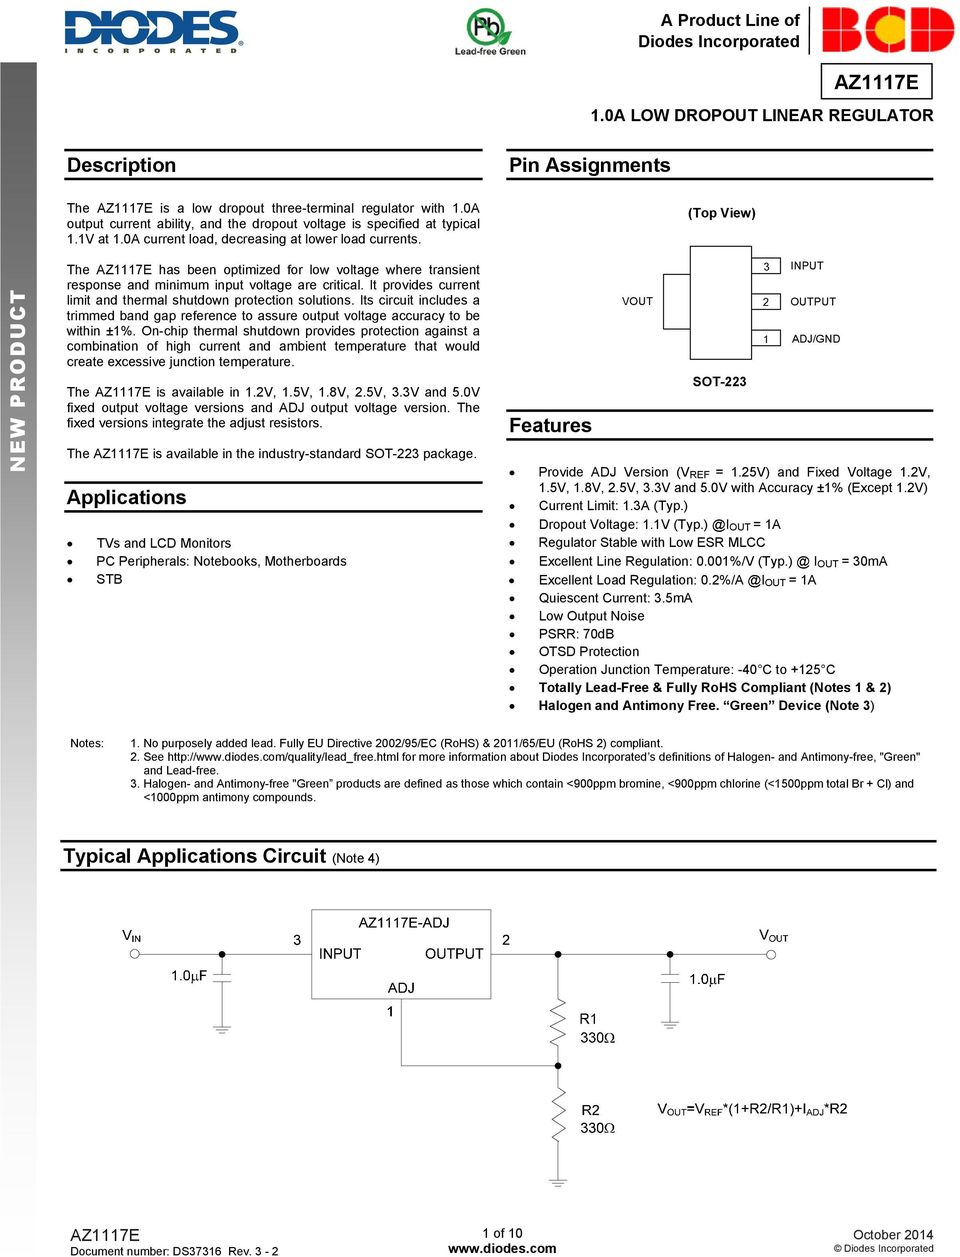 10a Low Dropout Linear Regulator Pdf Drop Out Ldo Voltage Using Discrete Semiconductors It Provides Current Limit And Thermal Shutdown Protection Solutions Its Circuit Includes A Trimmed Band